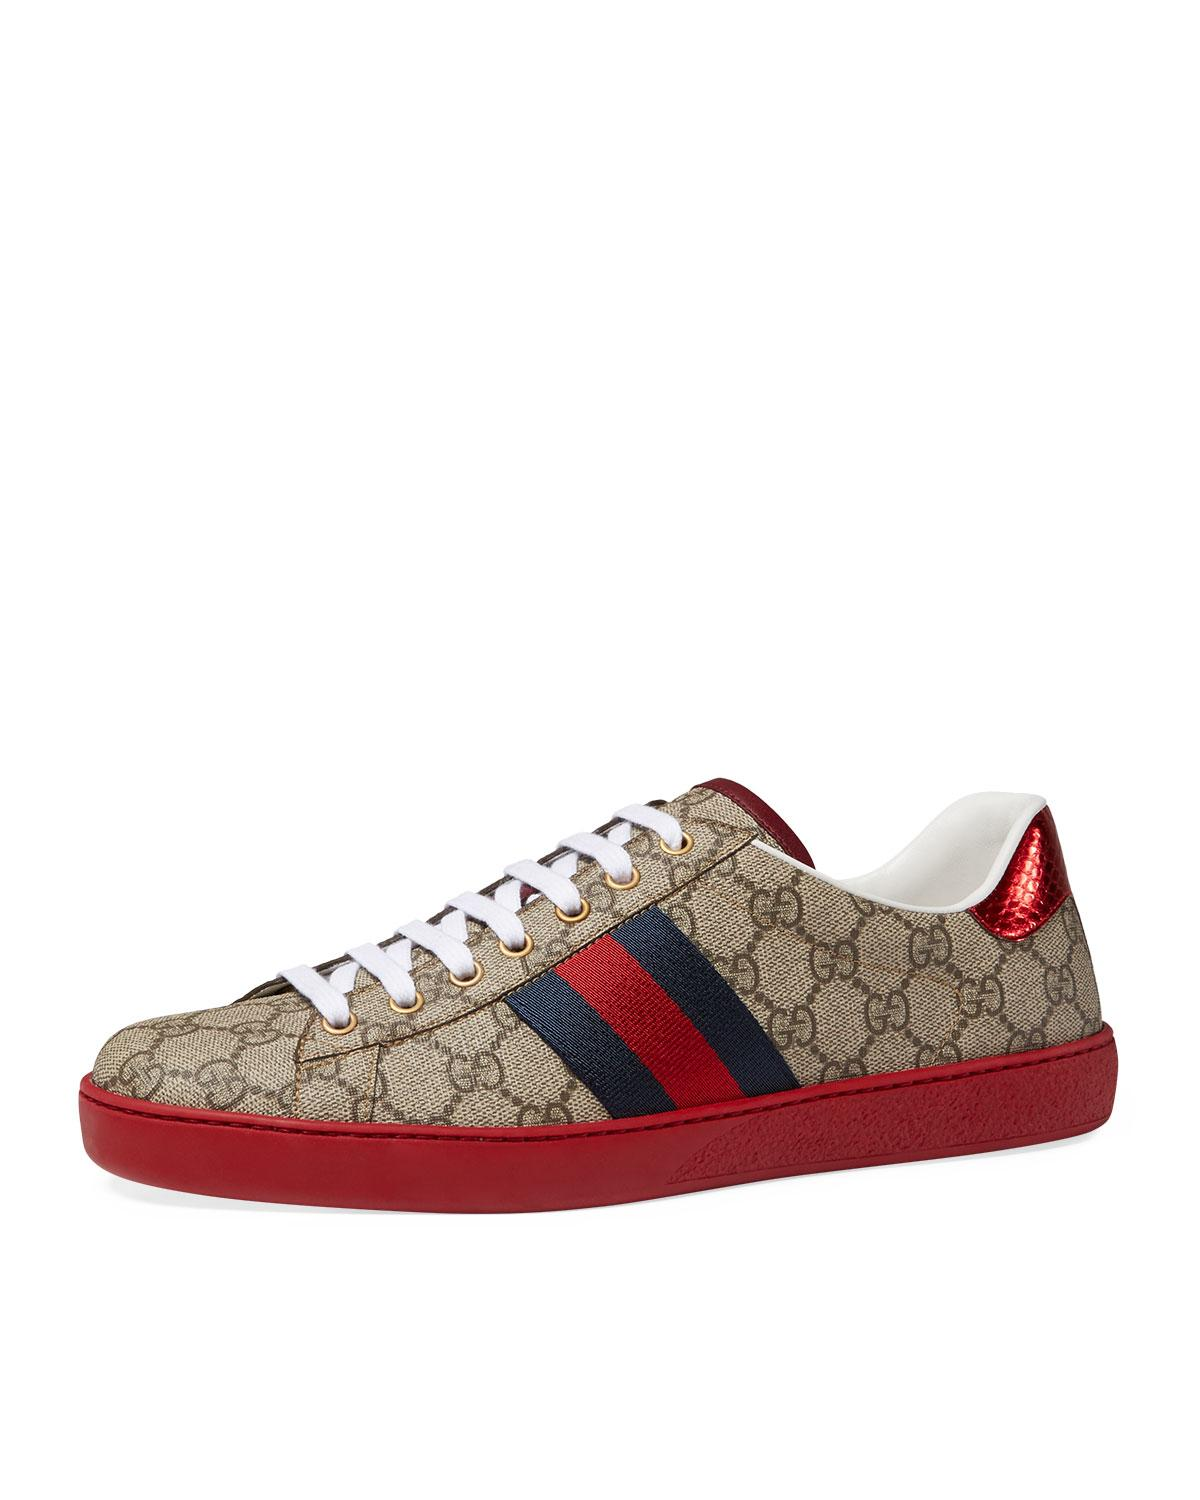 Gucci New Ace Gg Supreme Low Top Sneaker In Red For Men Lyst